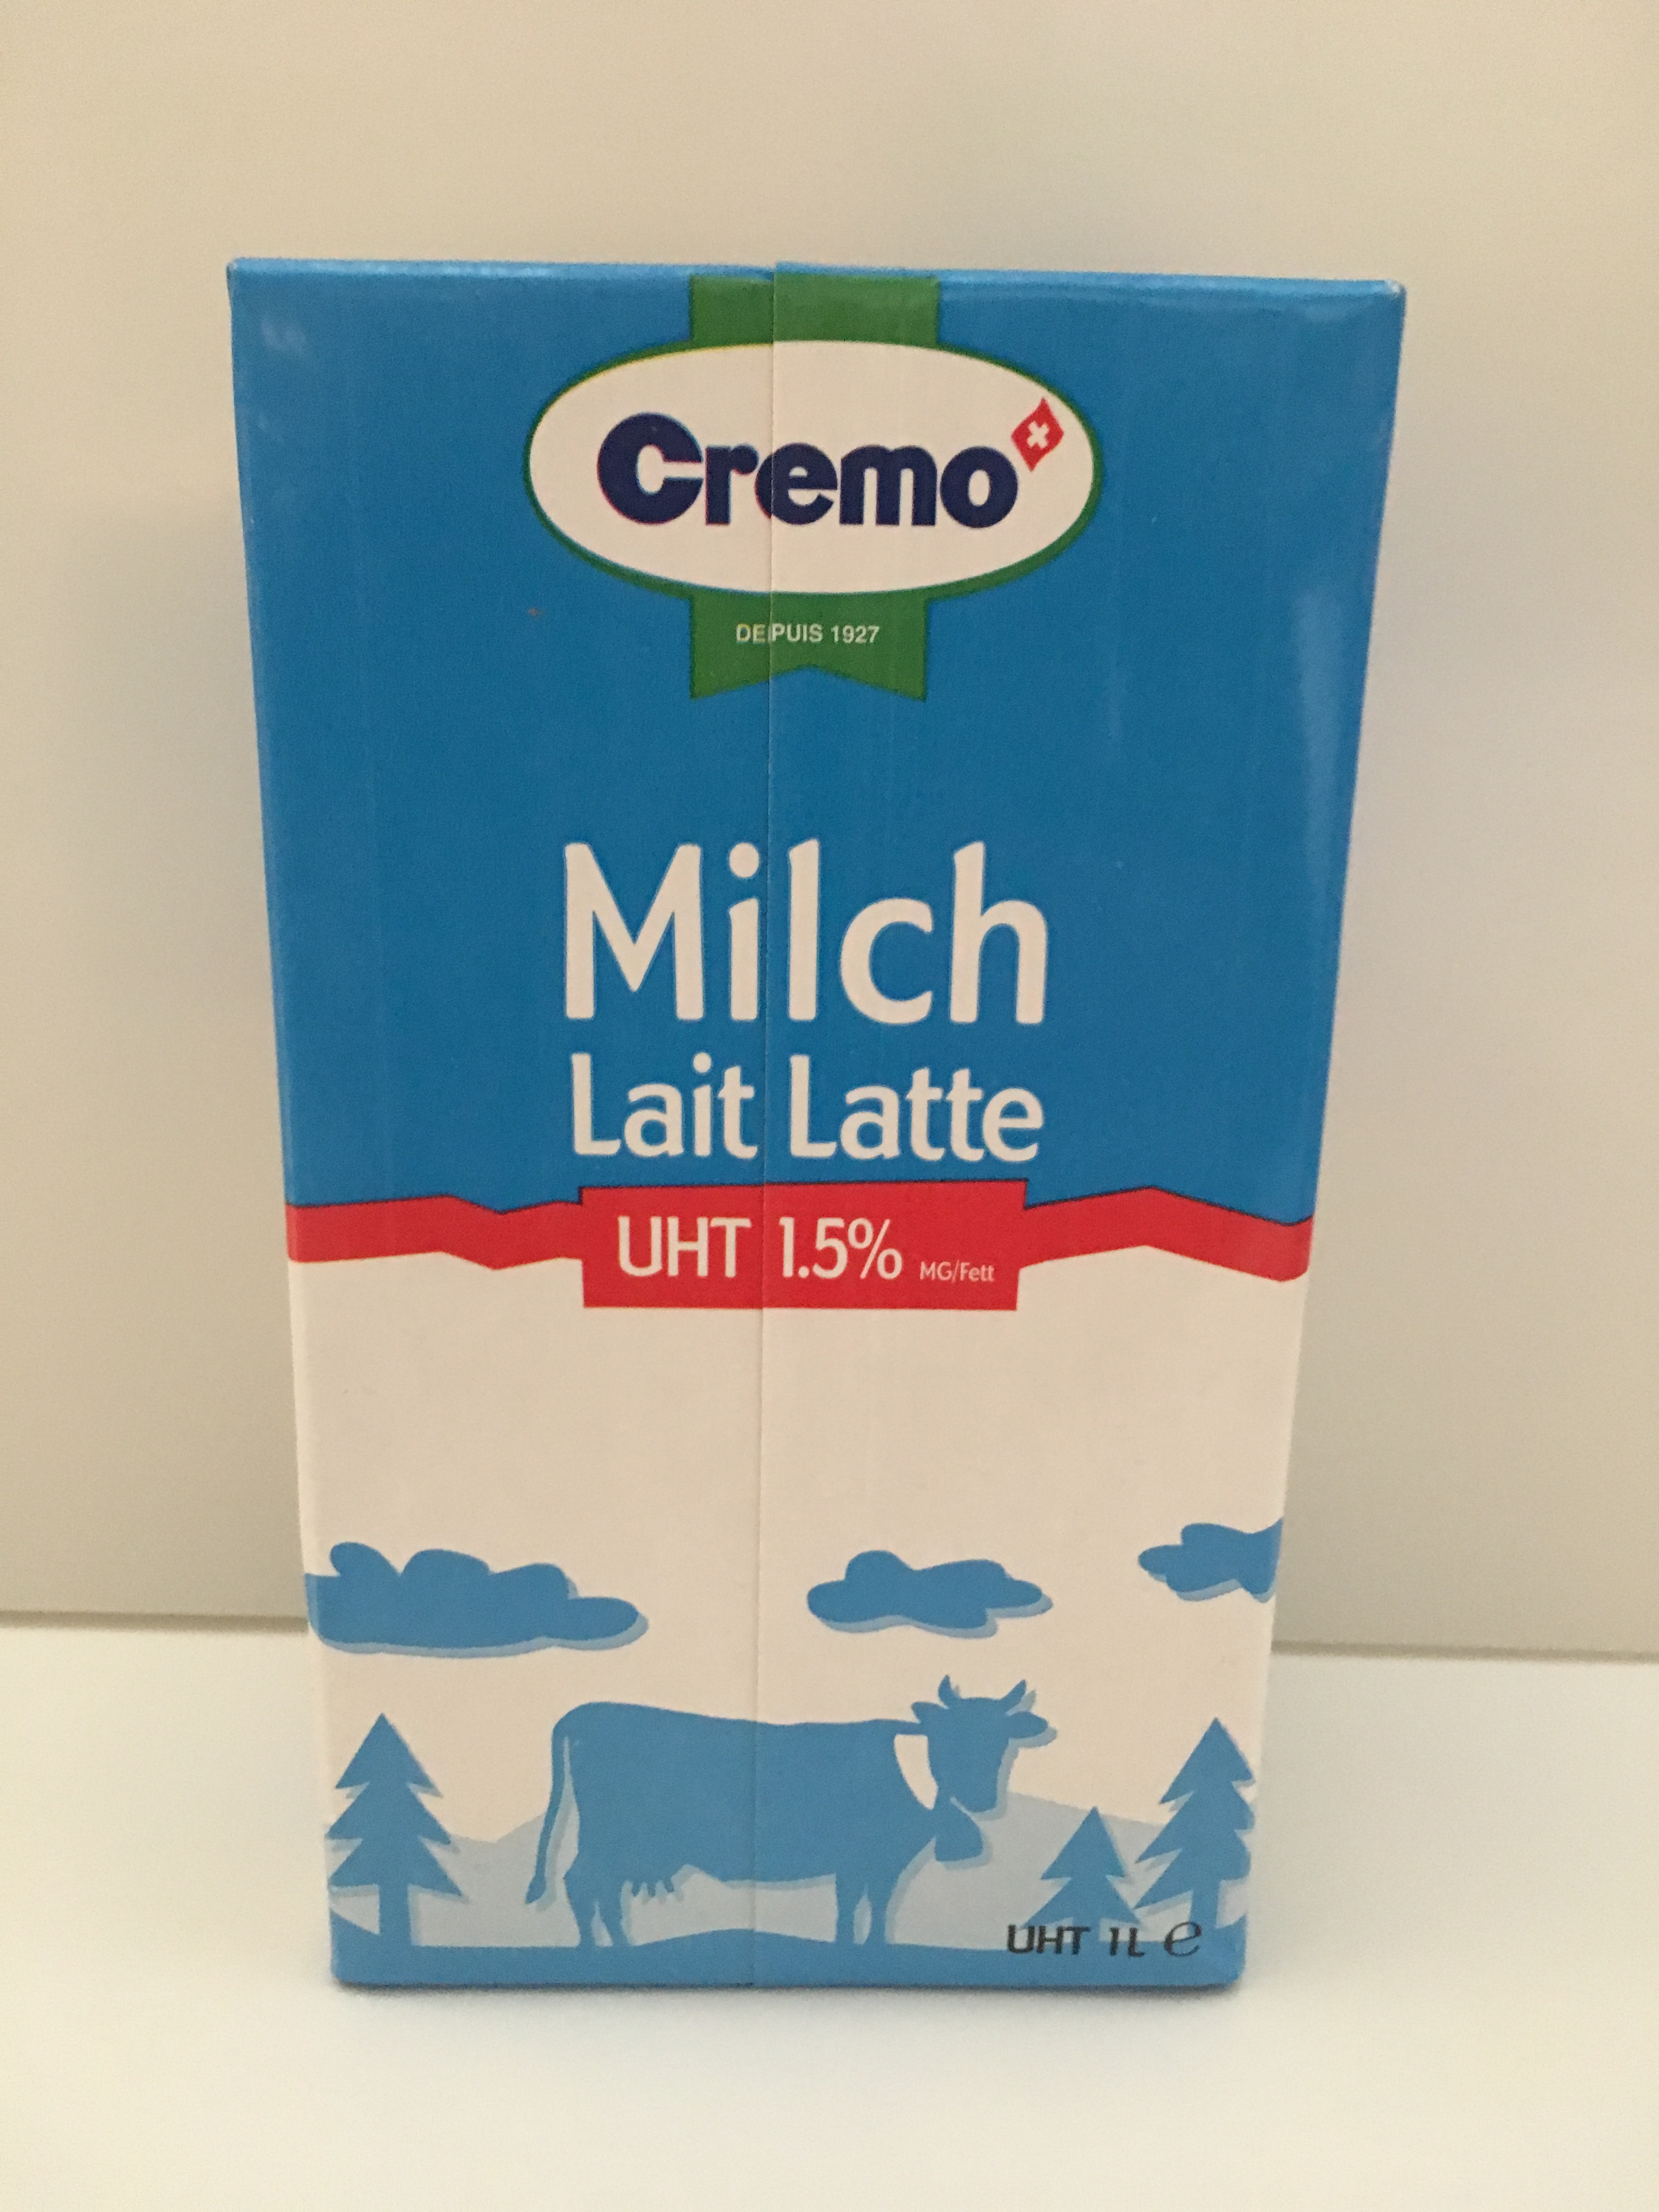 Milch: Drinkmilch UHT 1,5% Fett 0,5 ltr